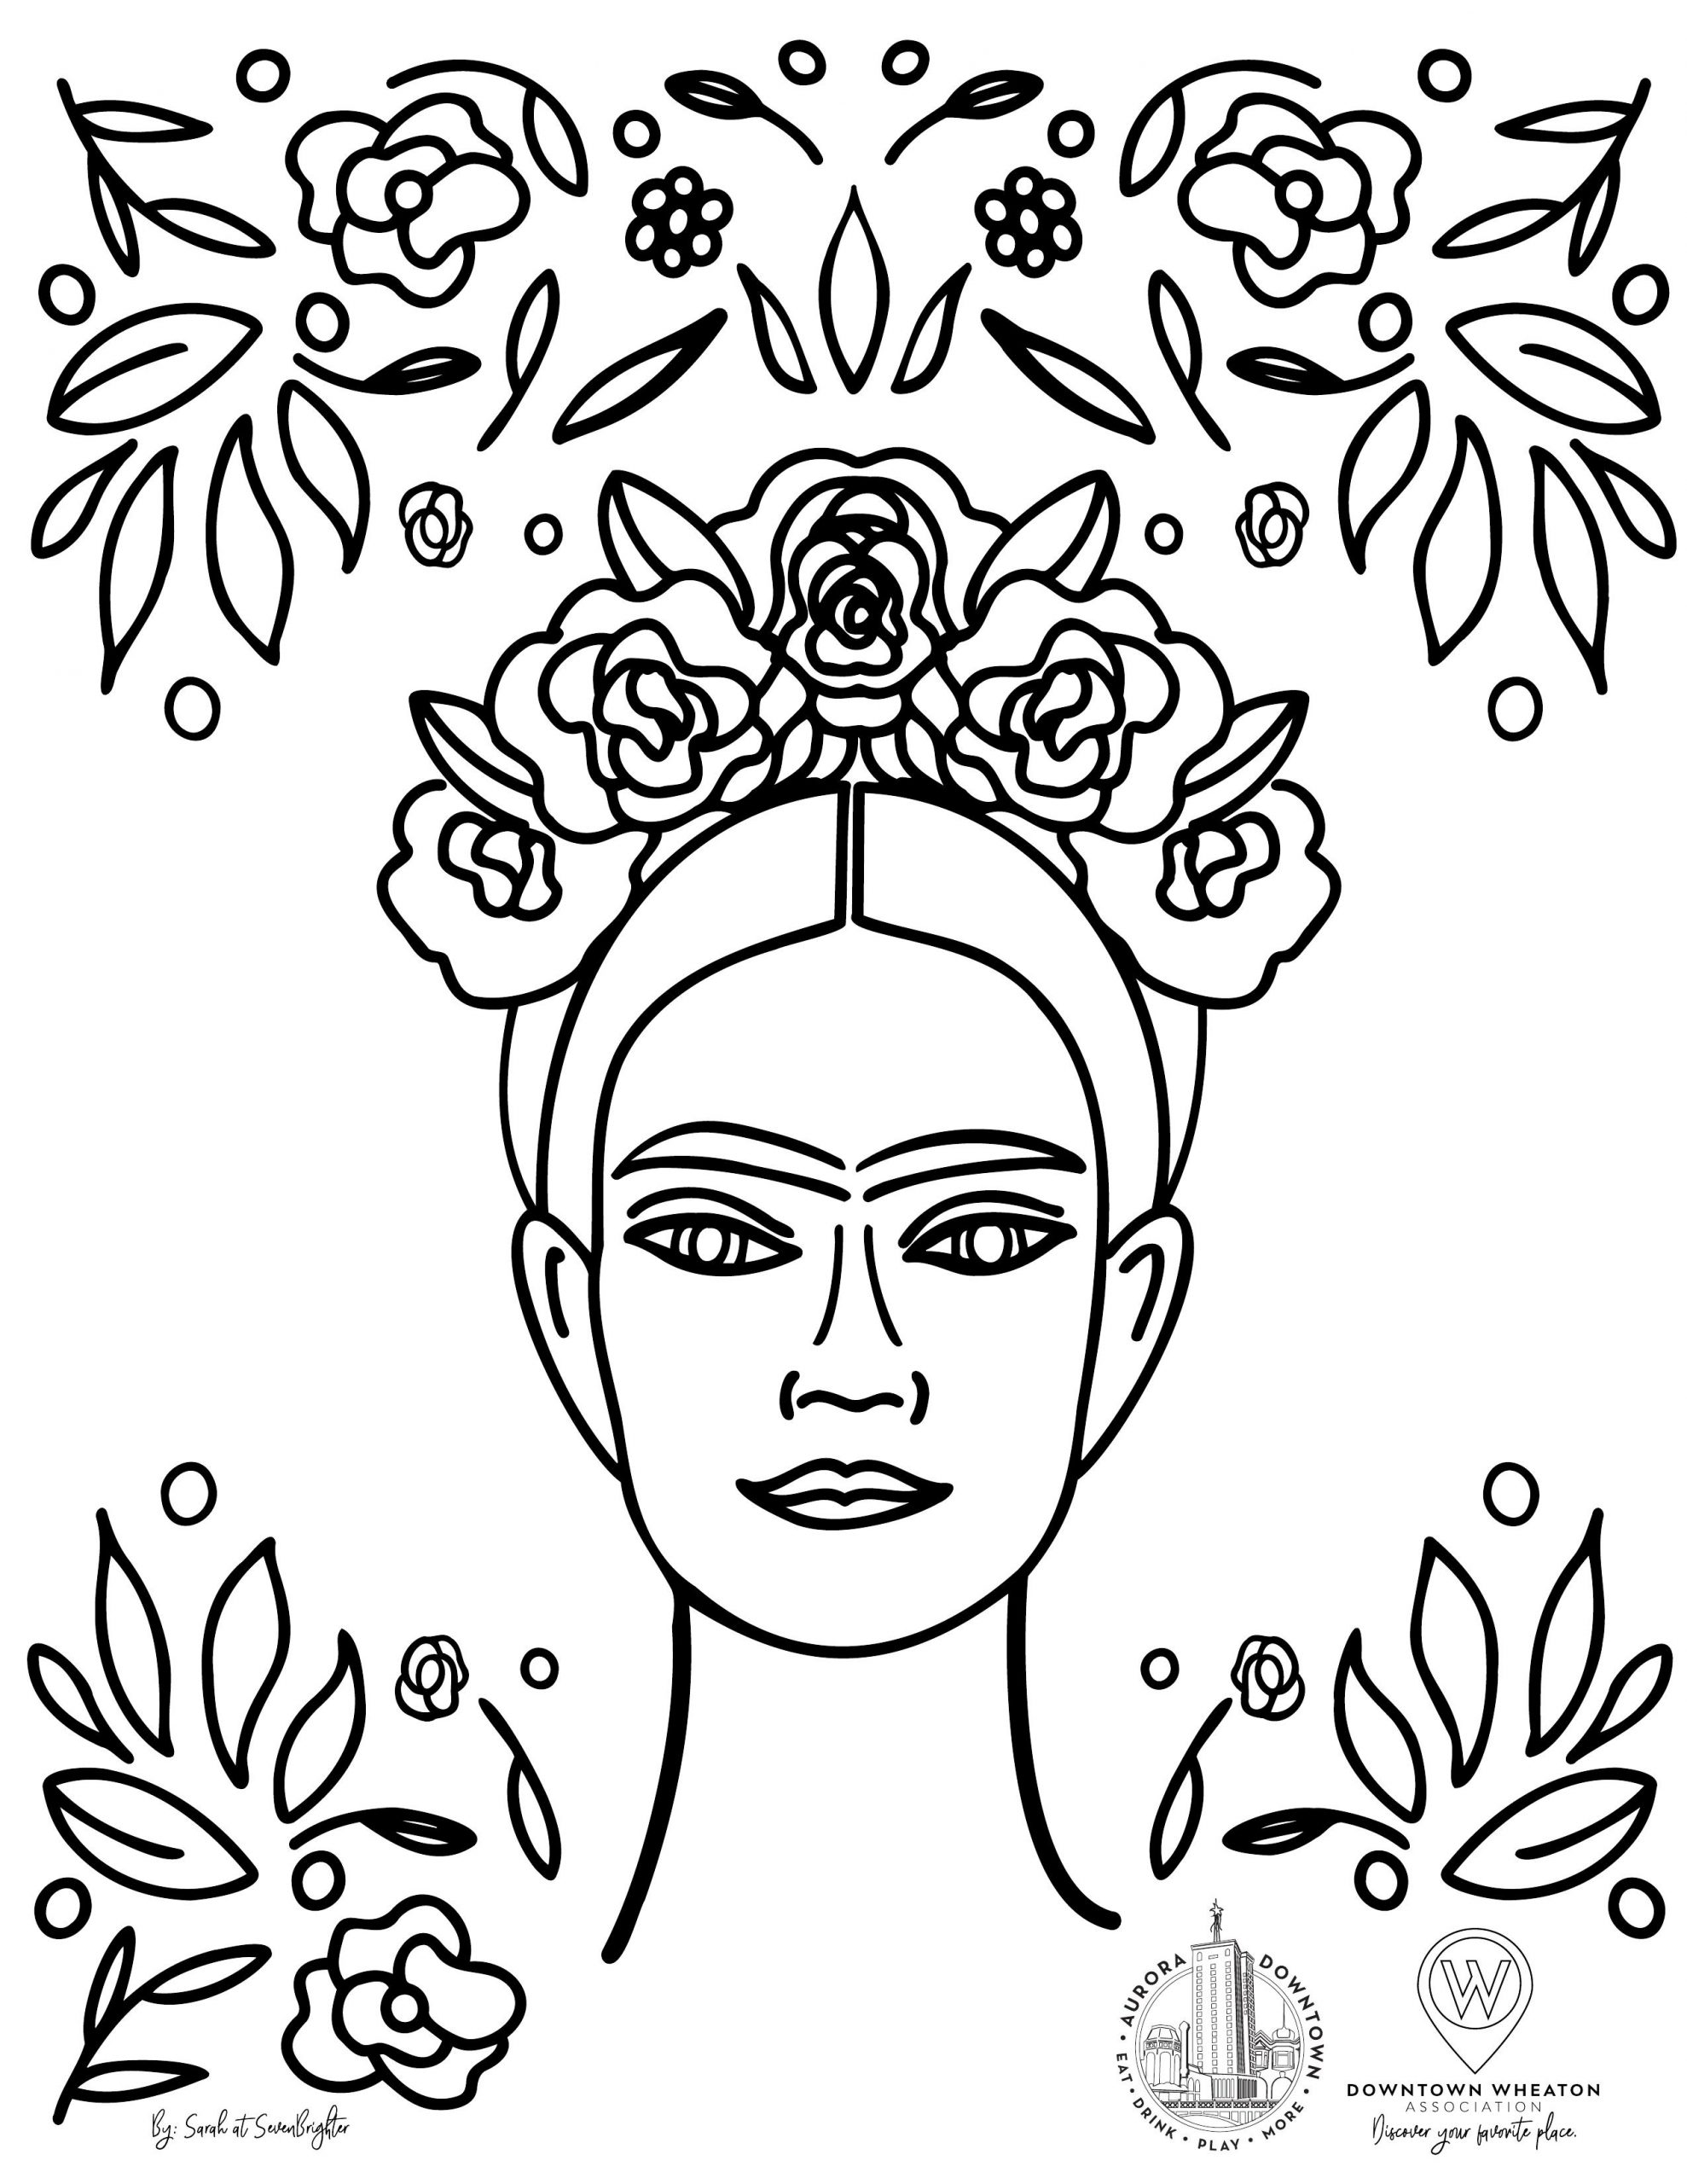 """Find Frida"""" coloring page project comes to Aurora » Aurora"""